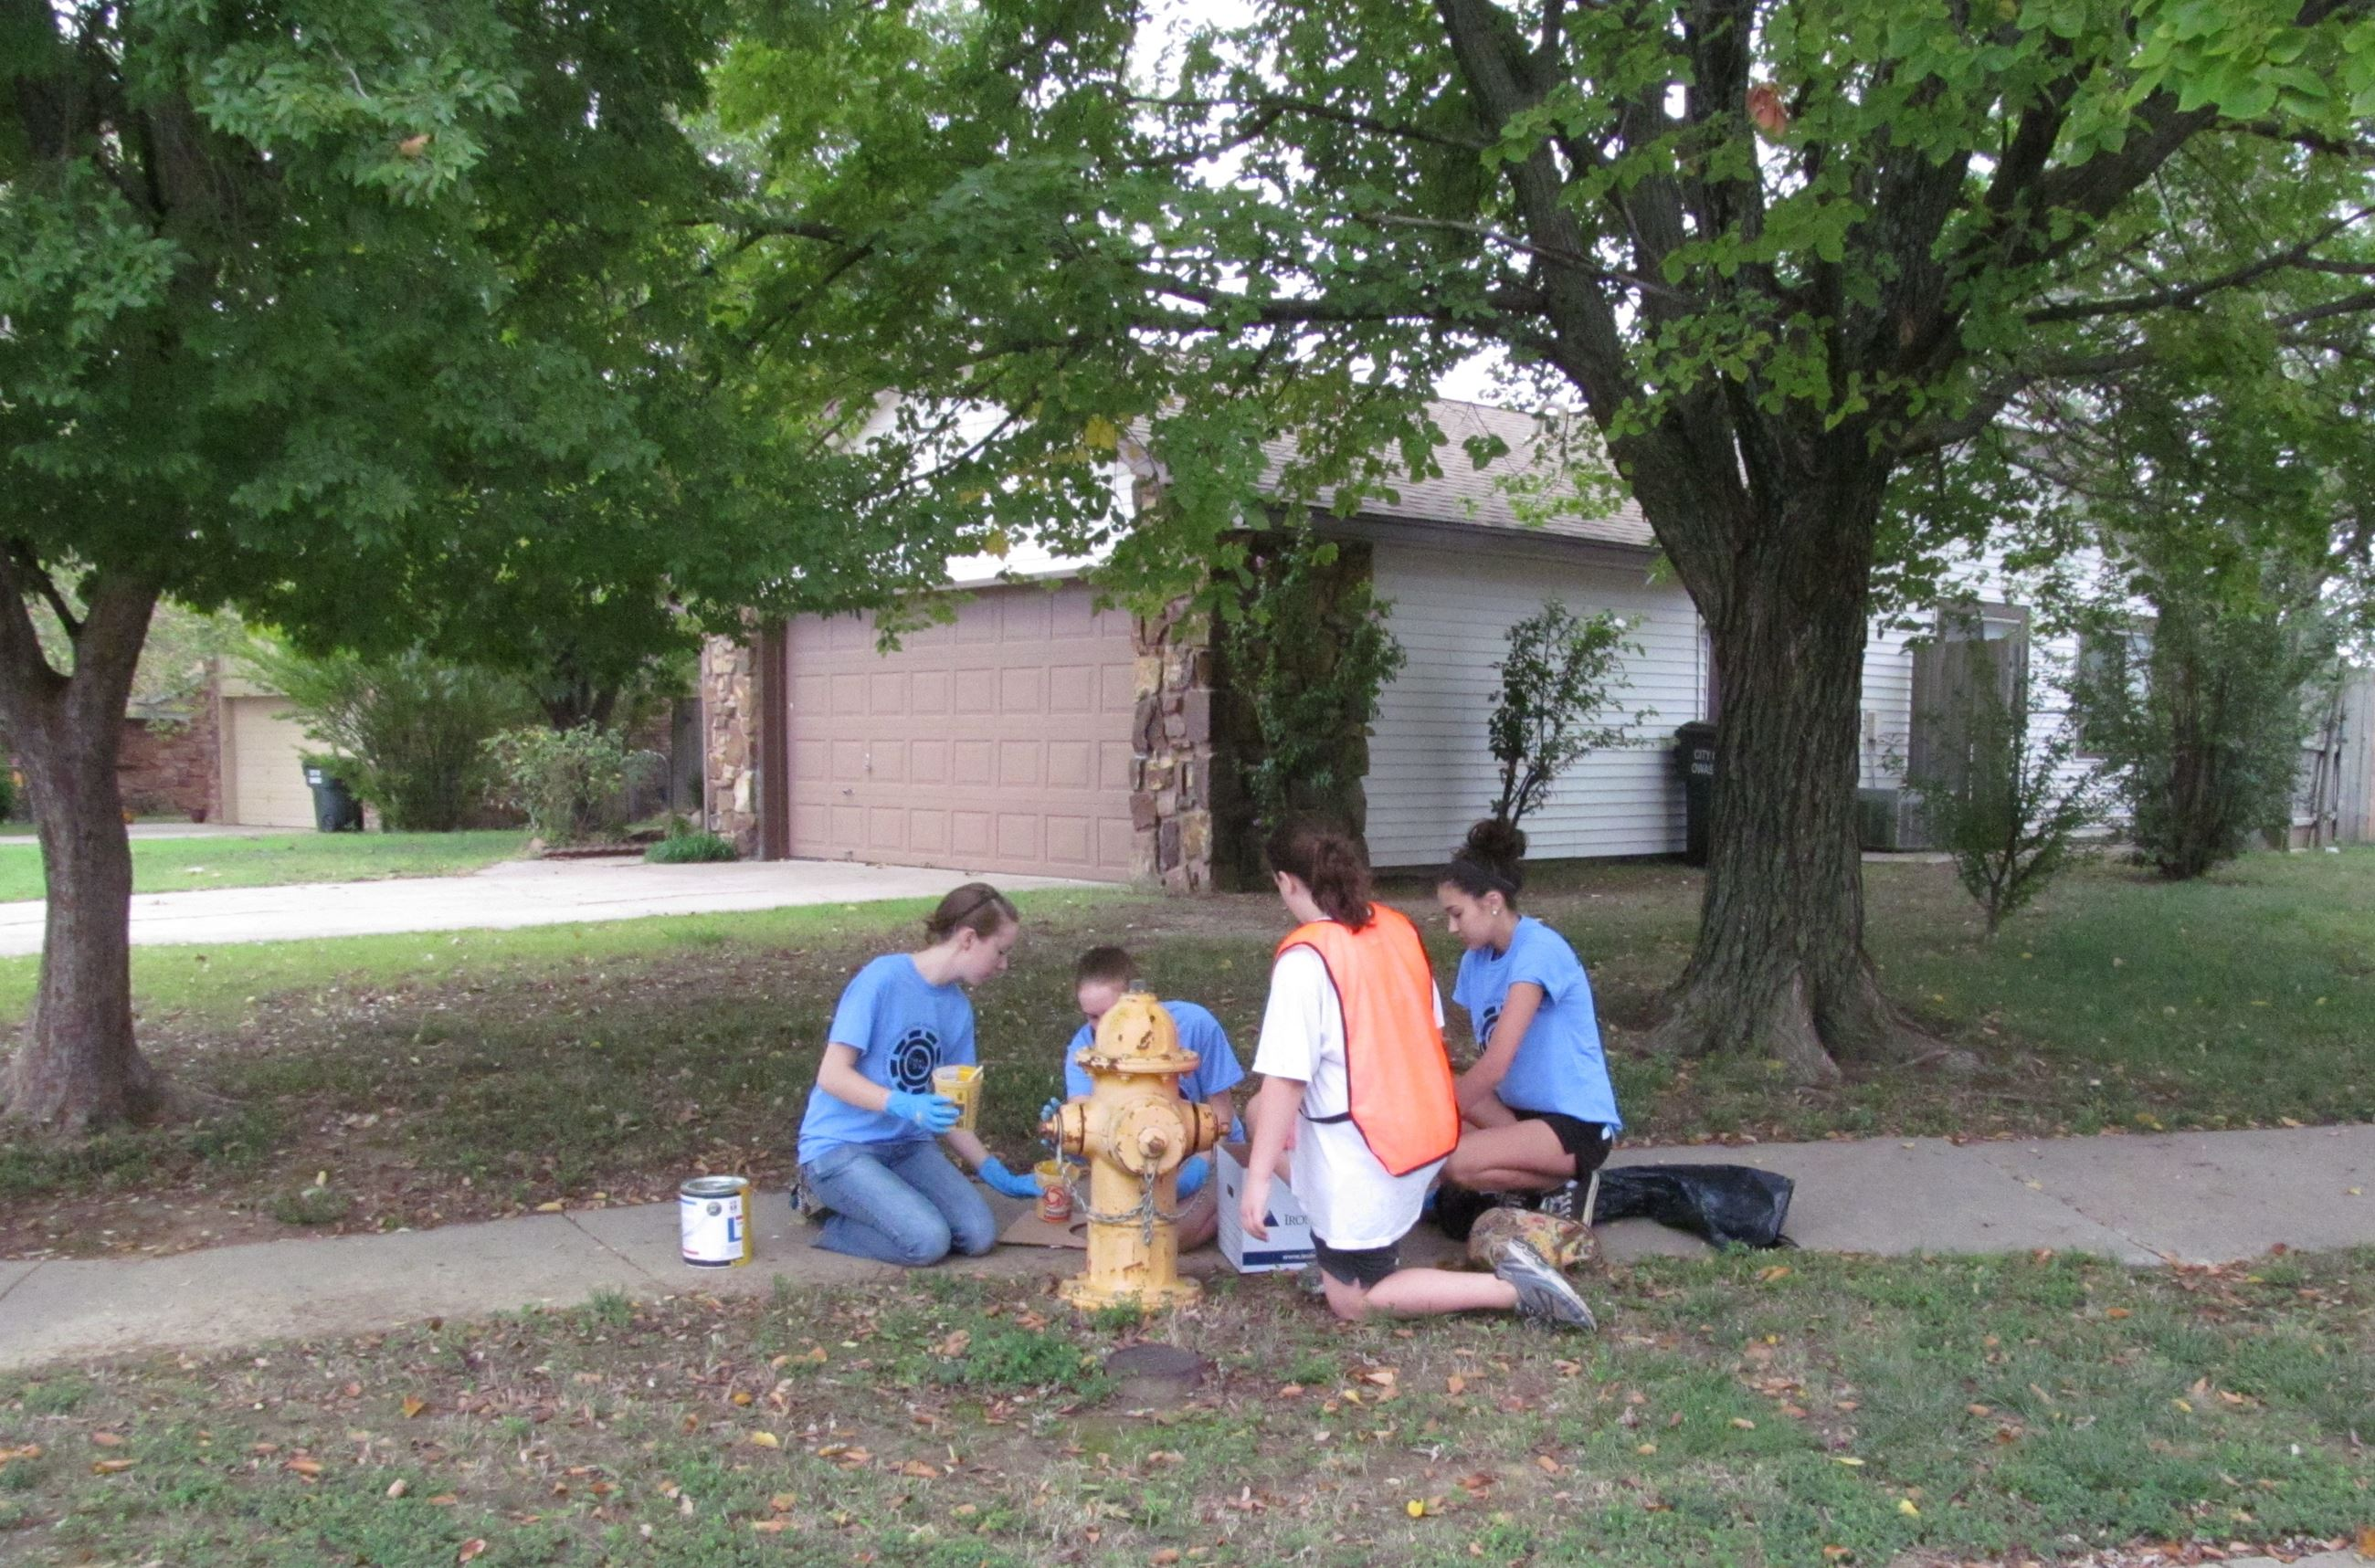 Volunteers painting fire hydrants